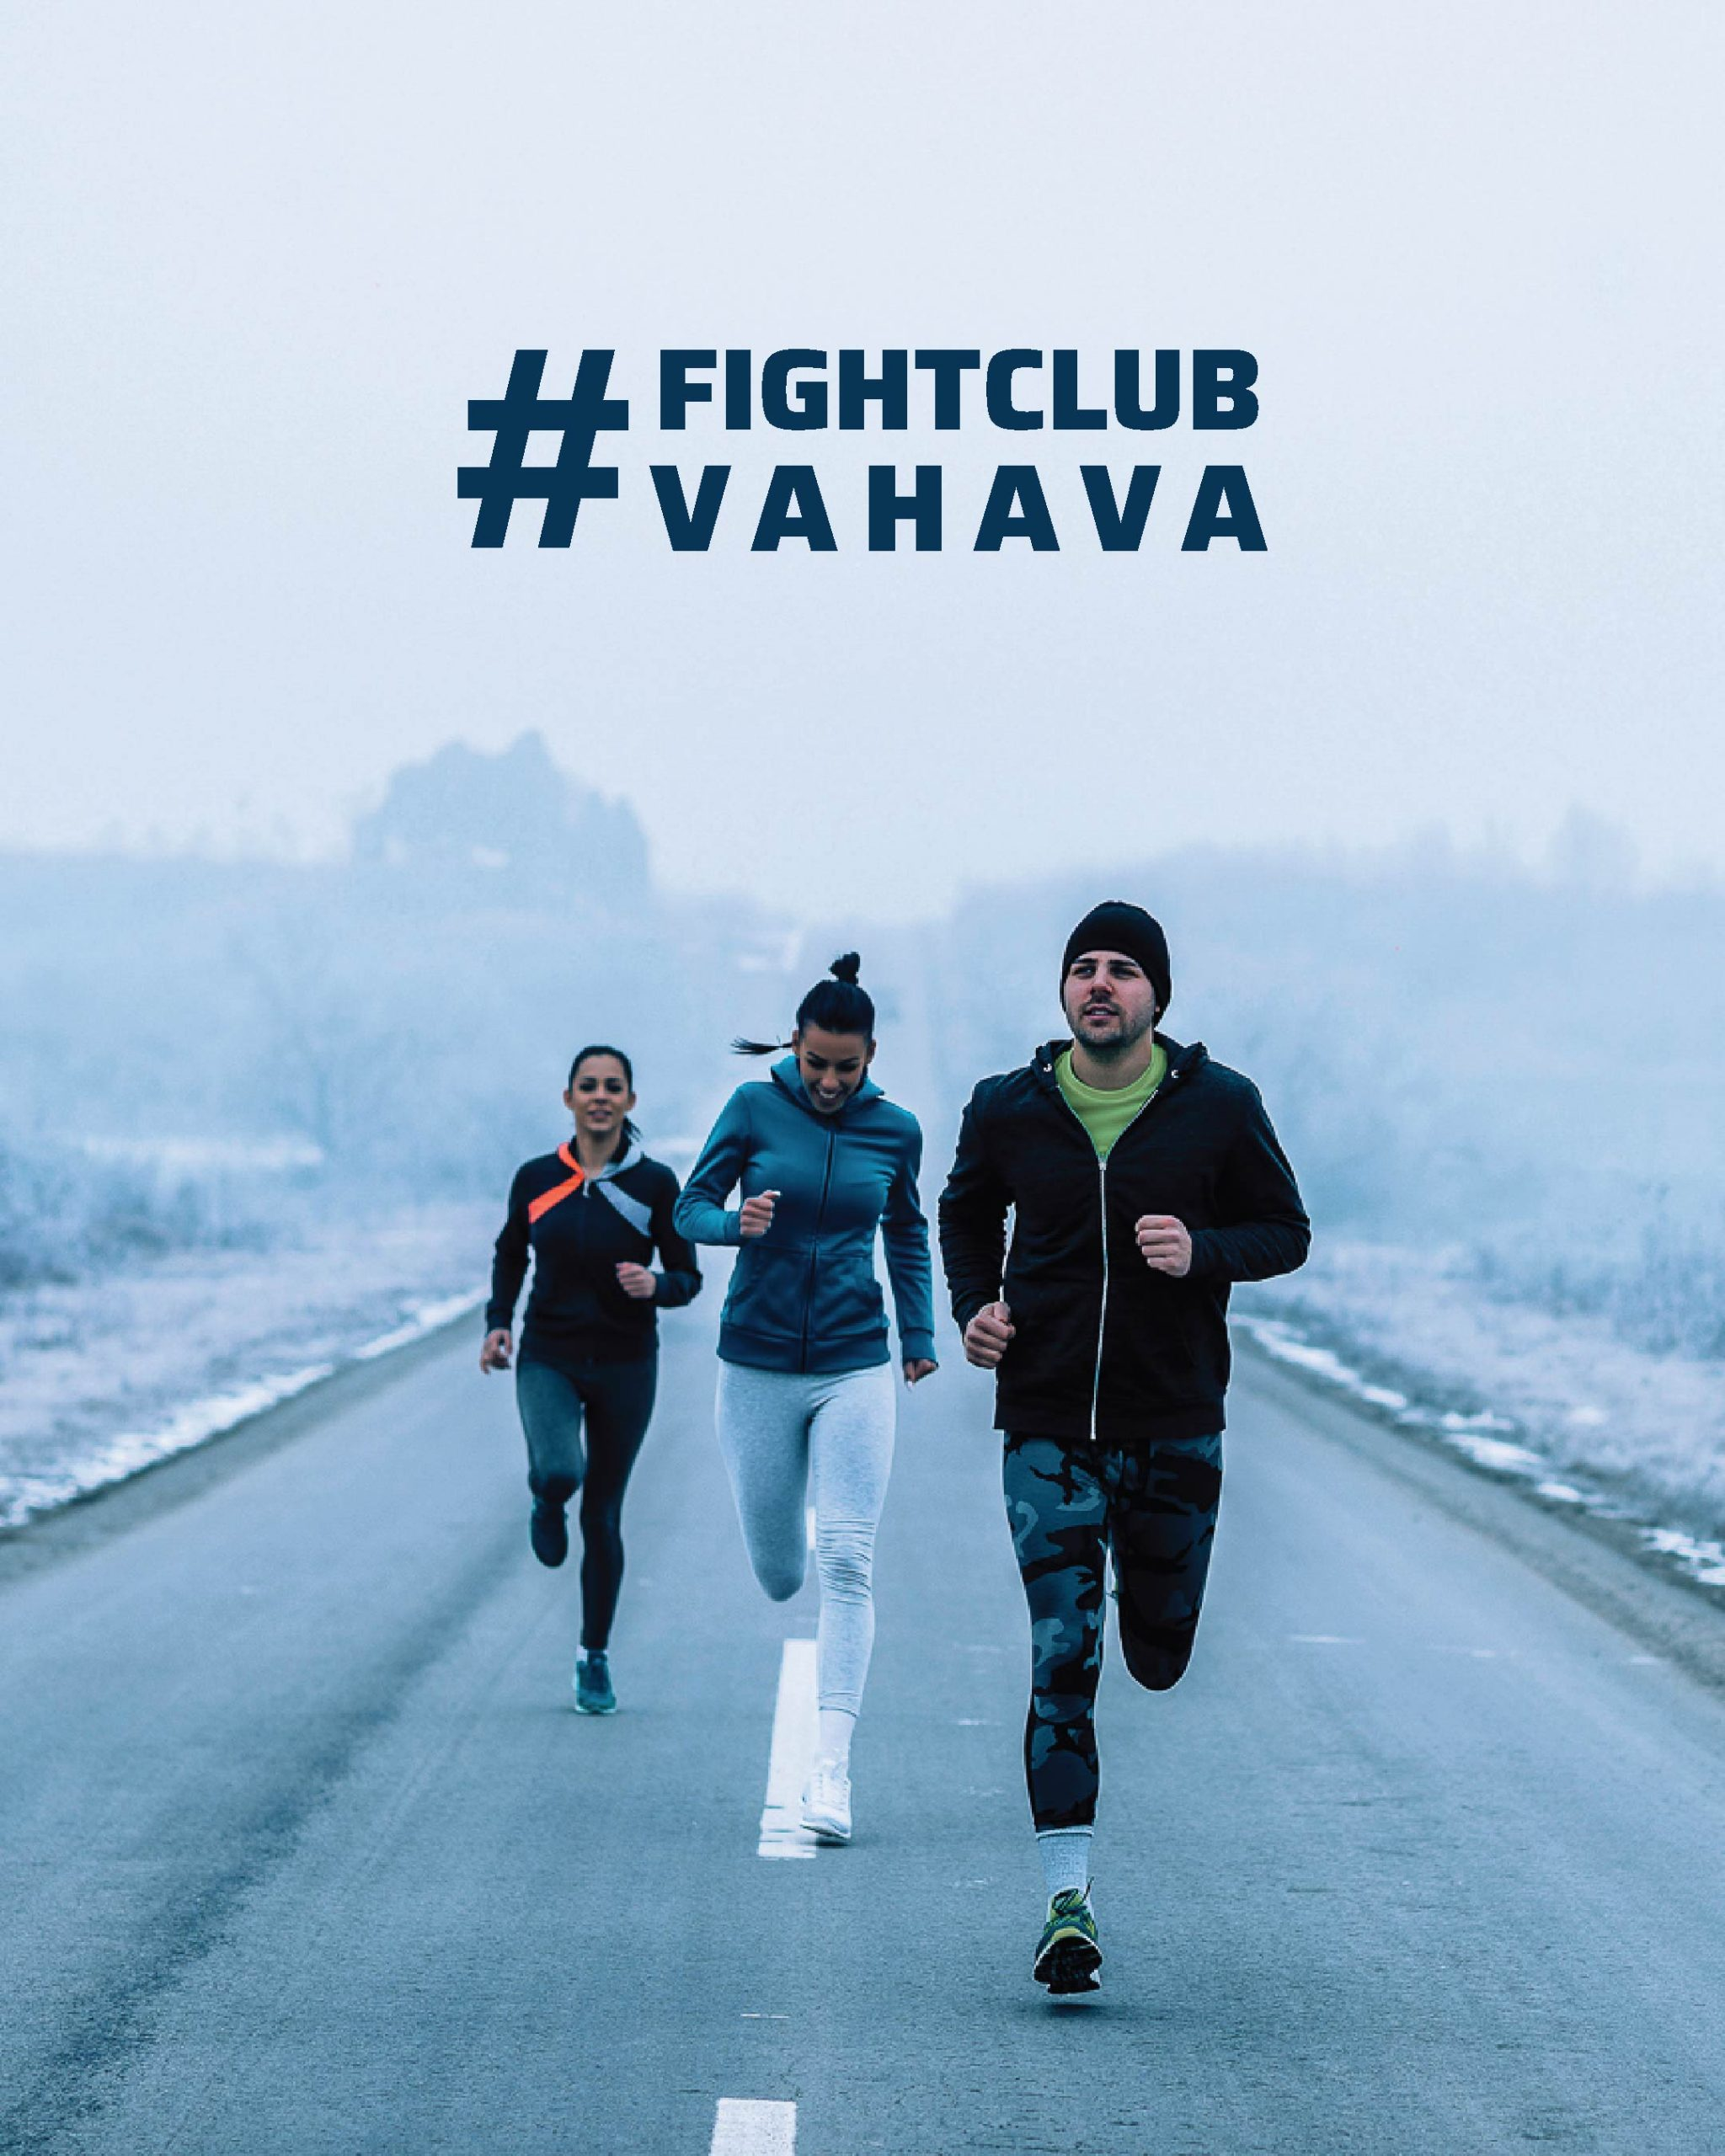 #fightclubvahava